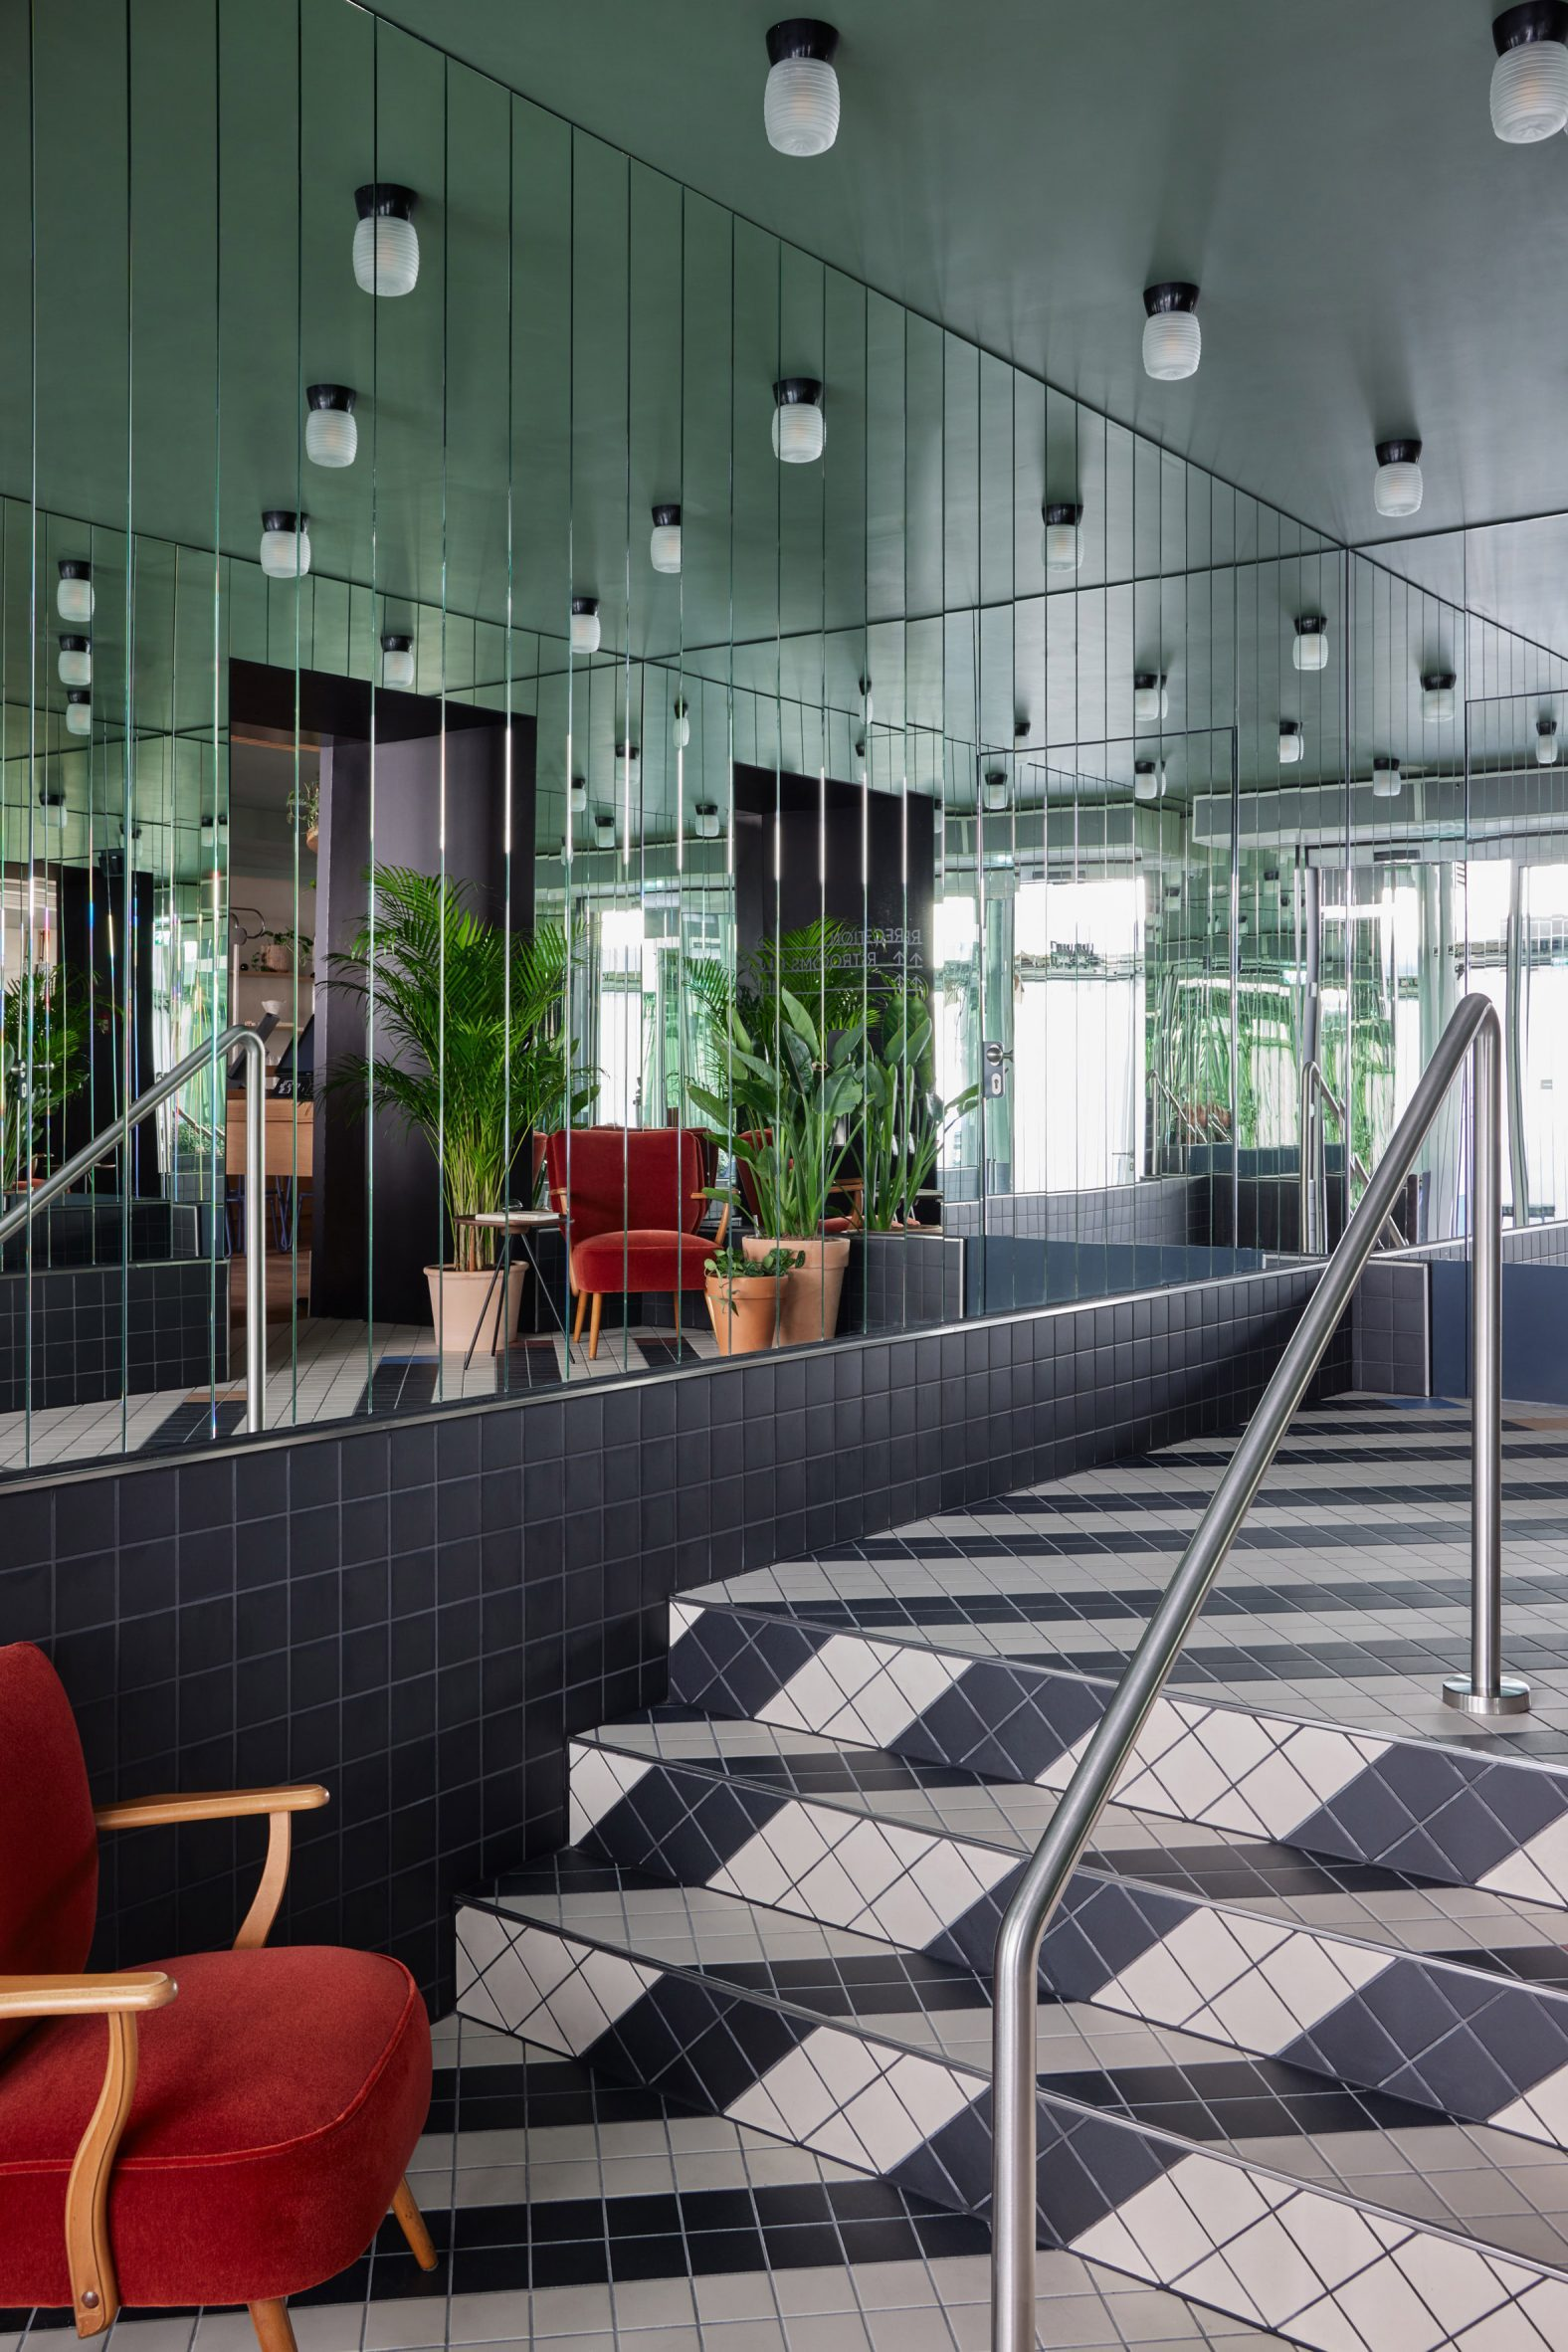 MIrrored walls and black and white patterned floors in Schwan Locke hotel